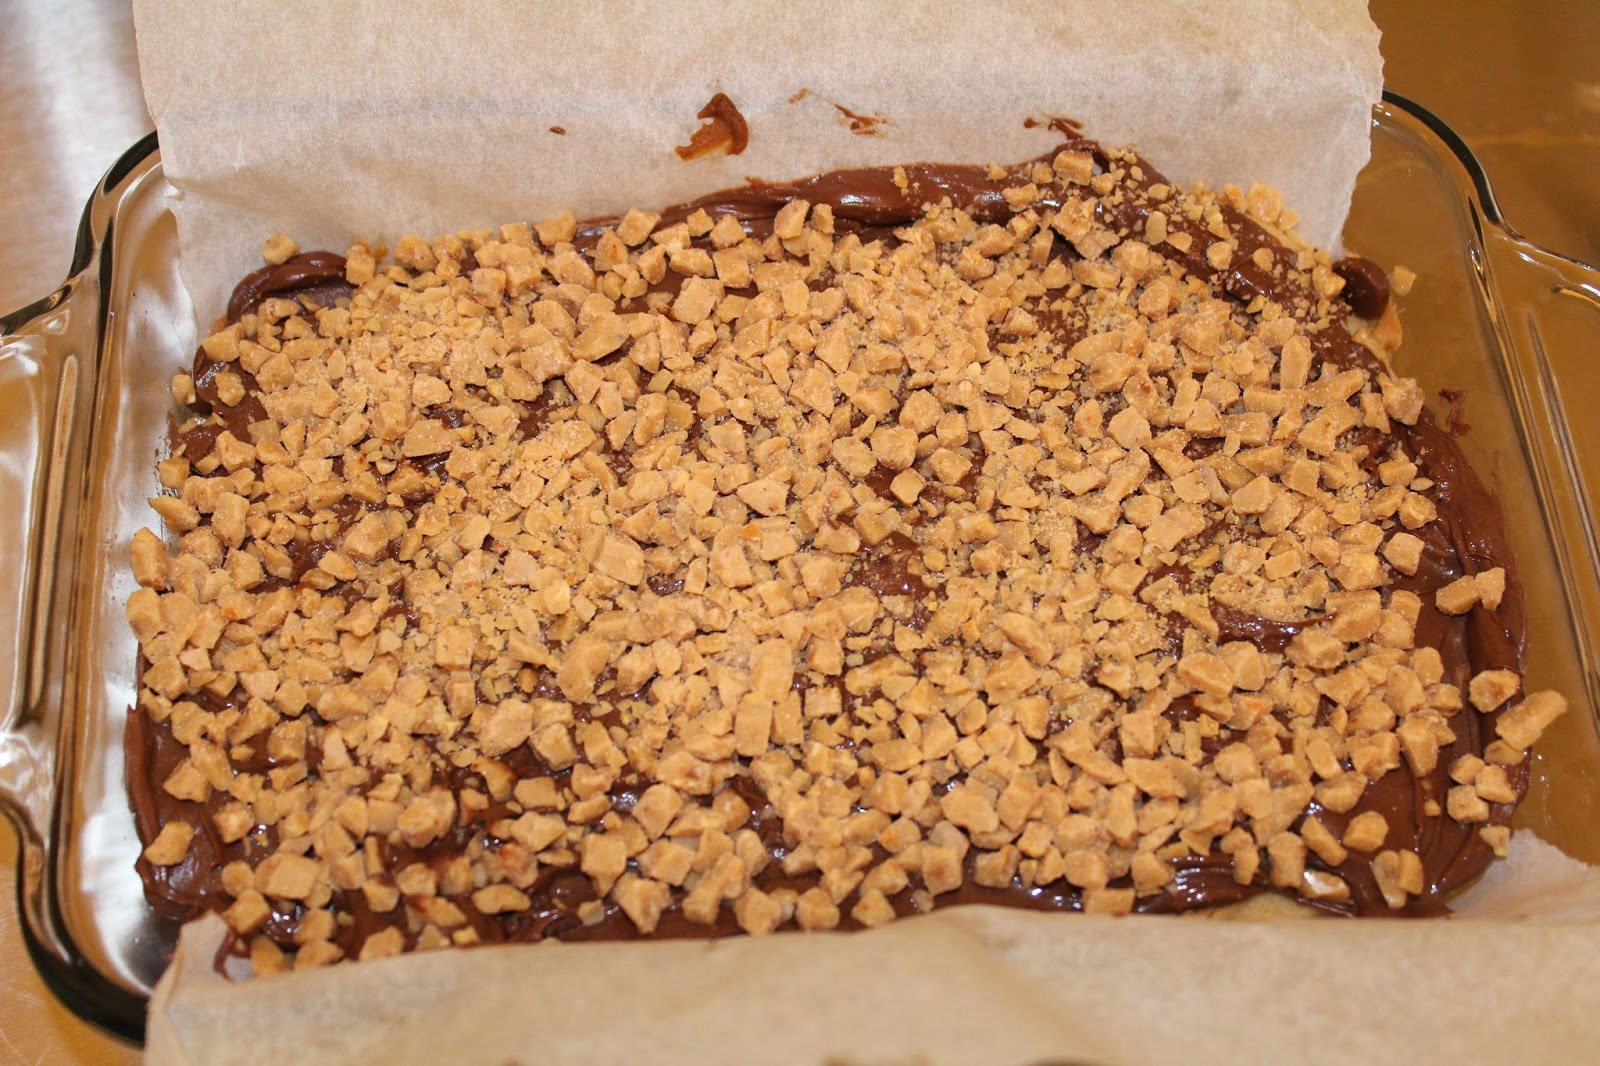 Chocolate Toffee Mini Bars